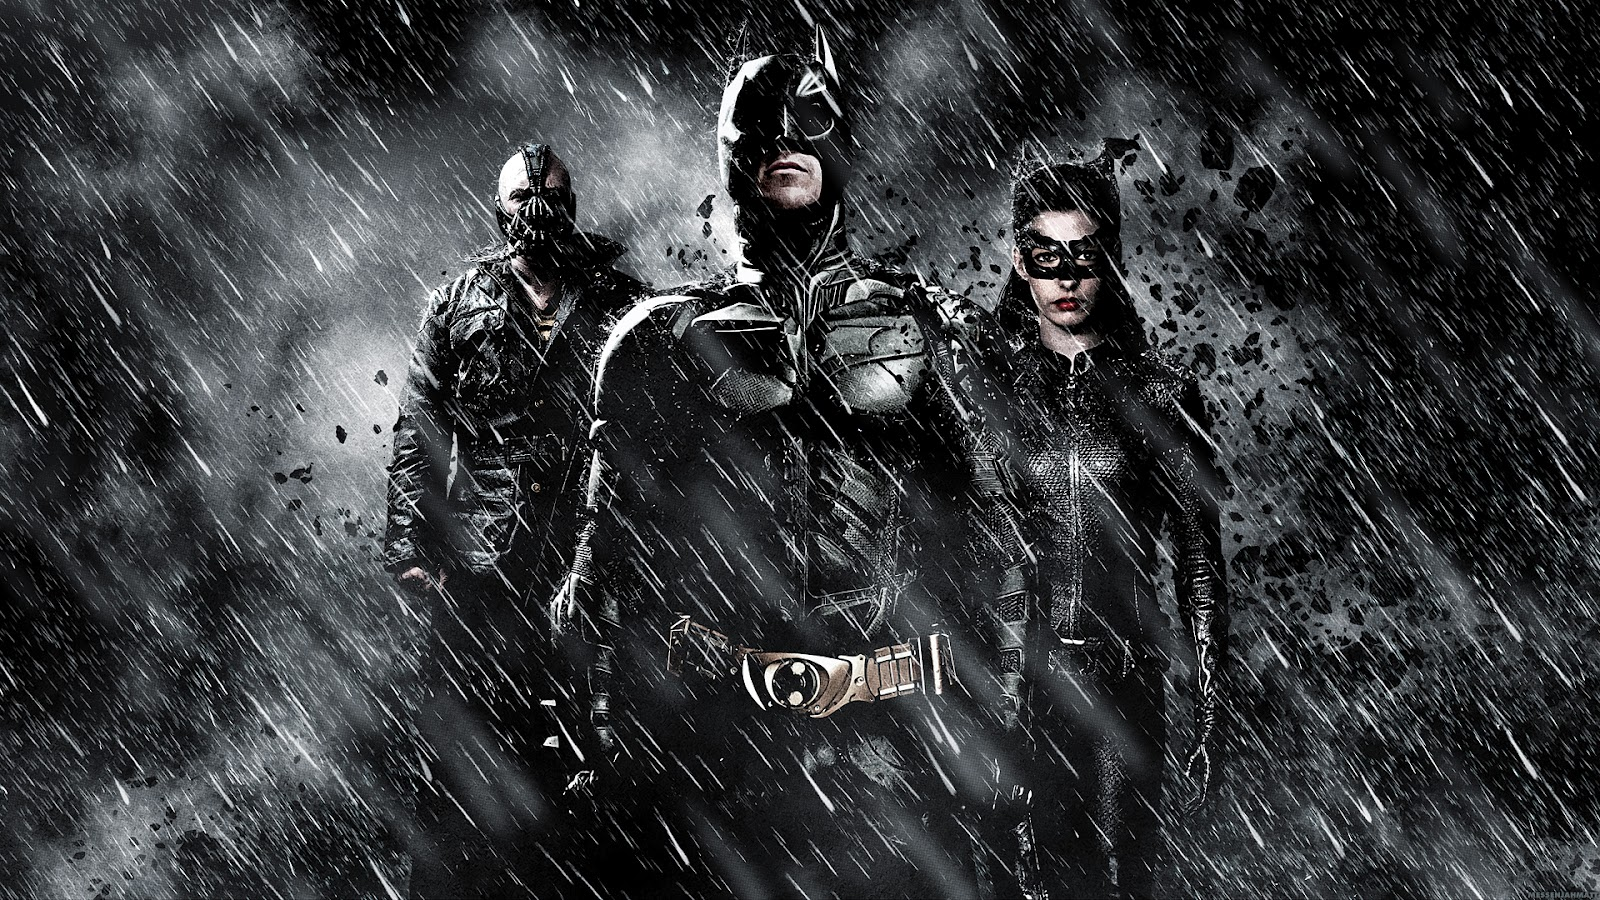 http://1.bp.blogspot.com/-eGB8eXnEGzs/T-MOjAVjUMI/AAAAAAAAFa8/eqeYJhZepgI/s1600/the_dark_knight_rises_movie-HD.jpg